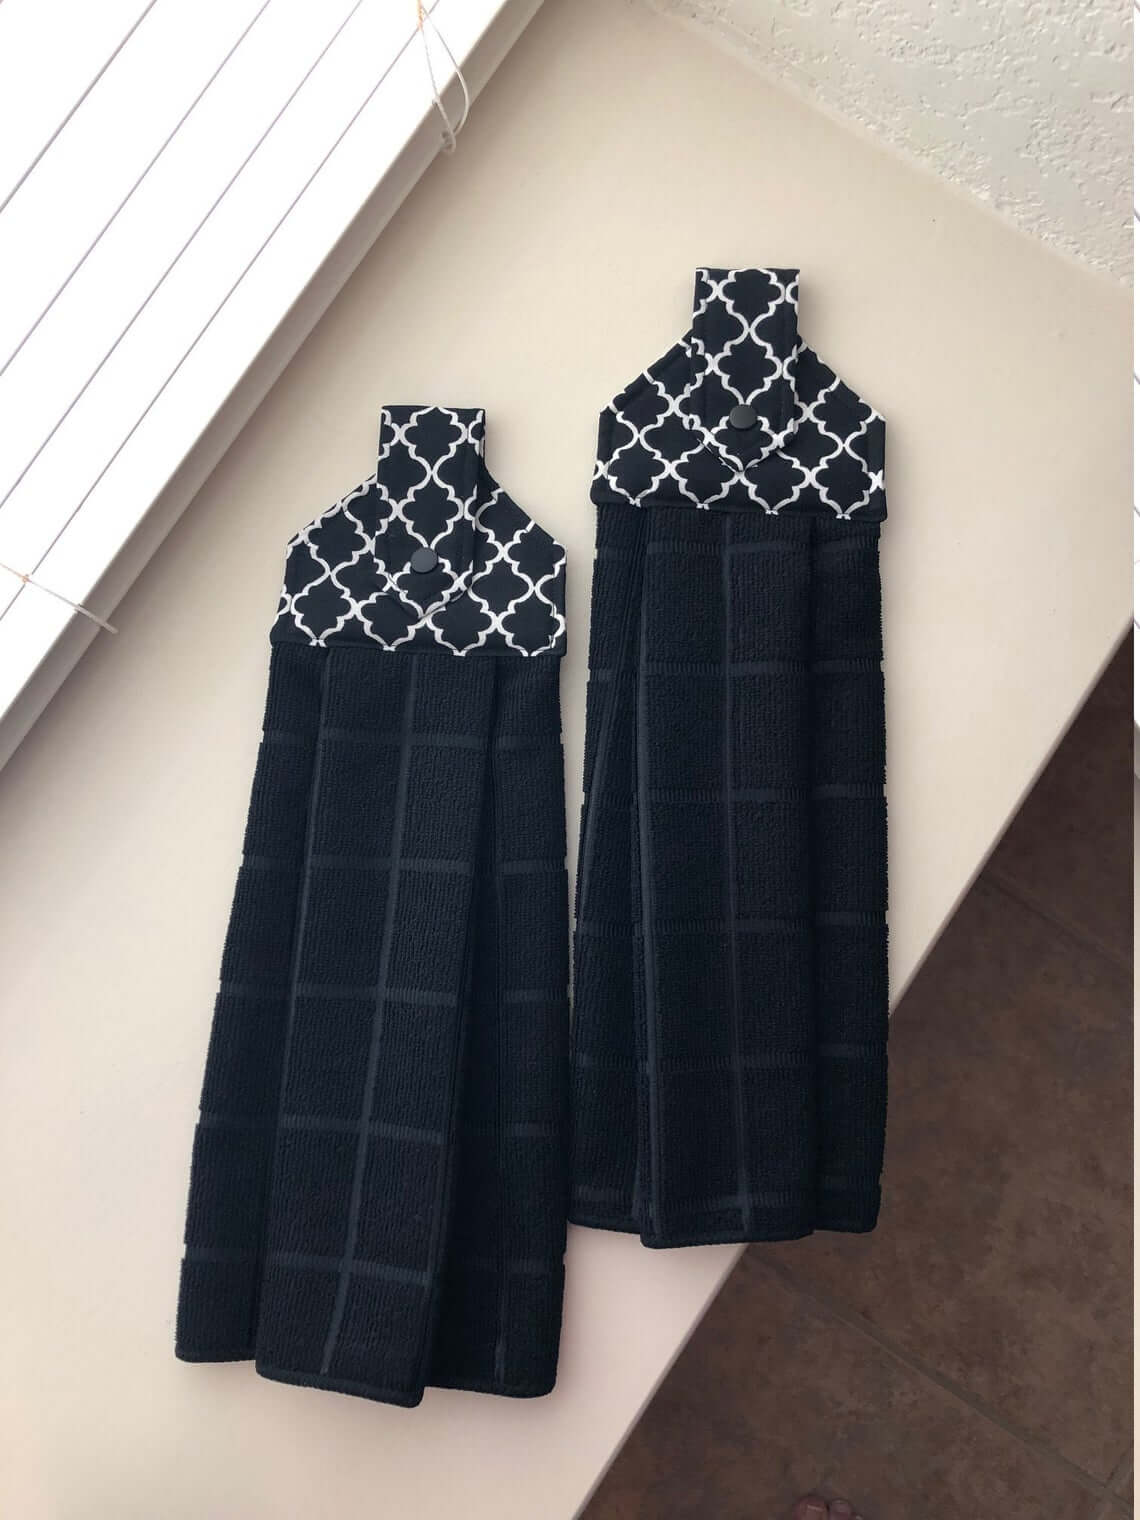 Decorative Black Kitchen Towels with Holders